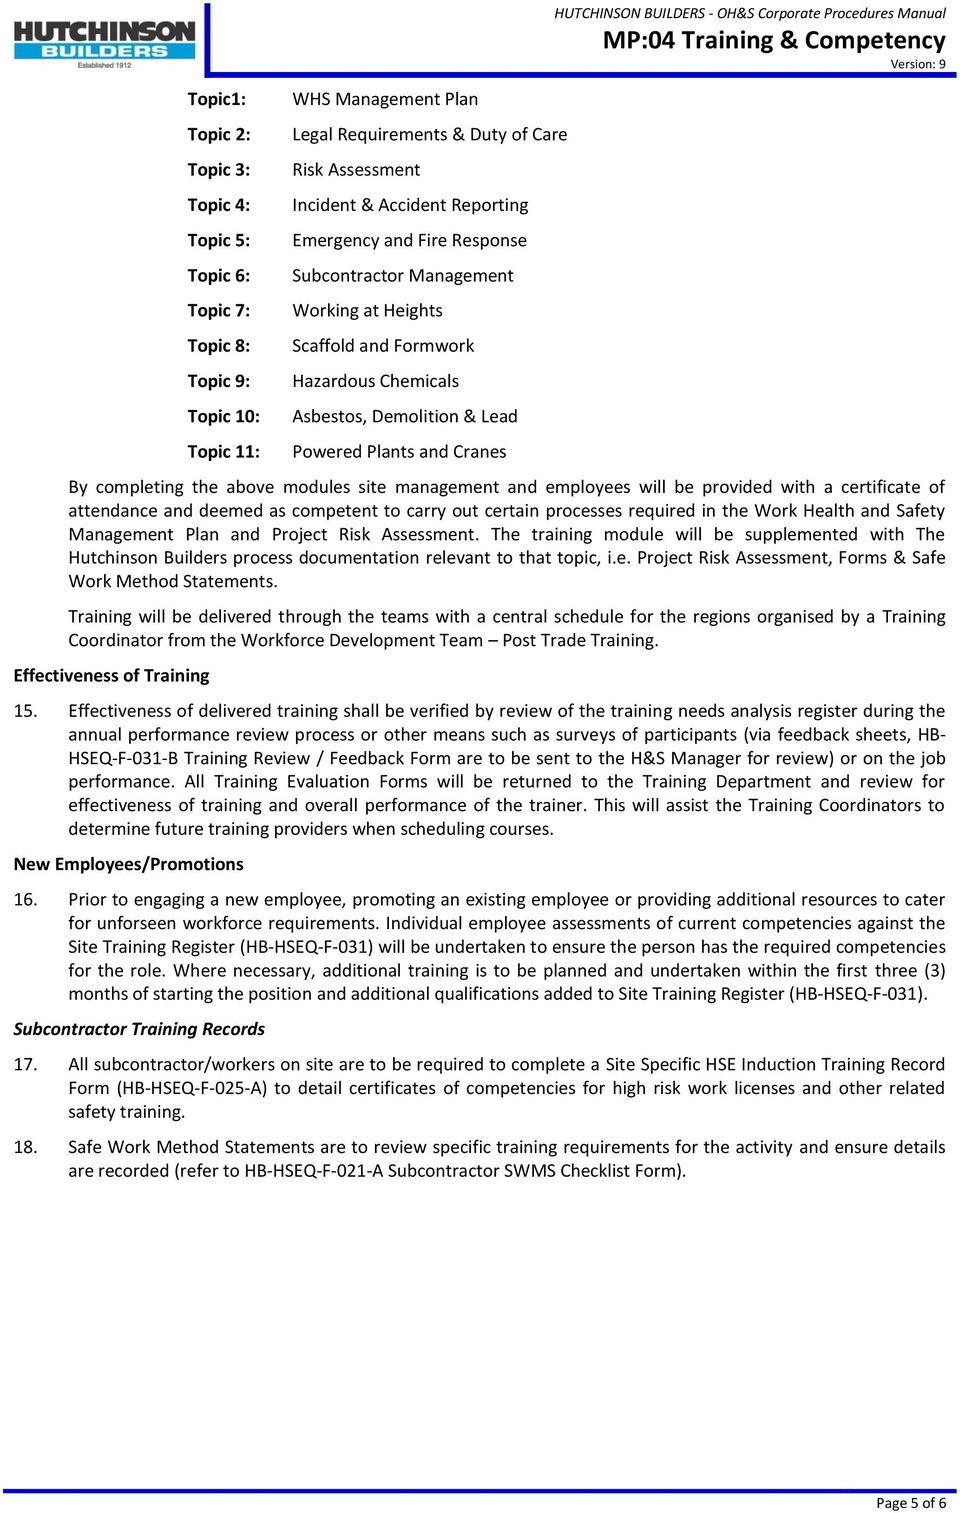 Health And Safety Method Statement Template how to make tickets – Method Statement Template Doc